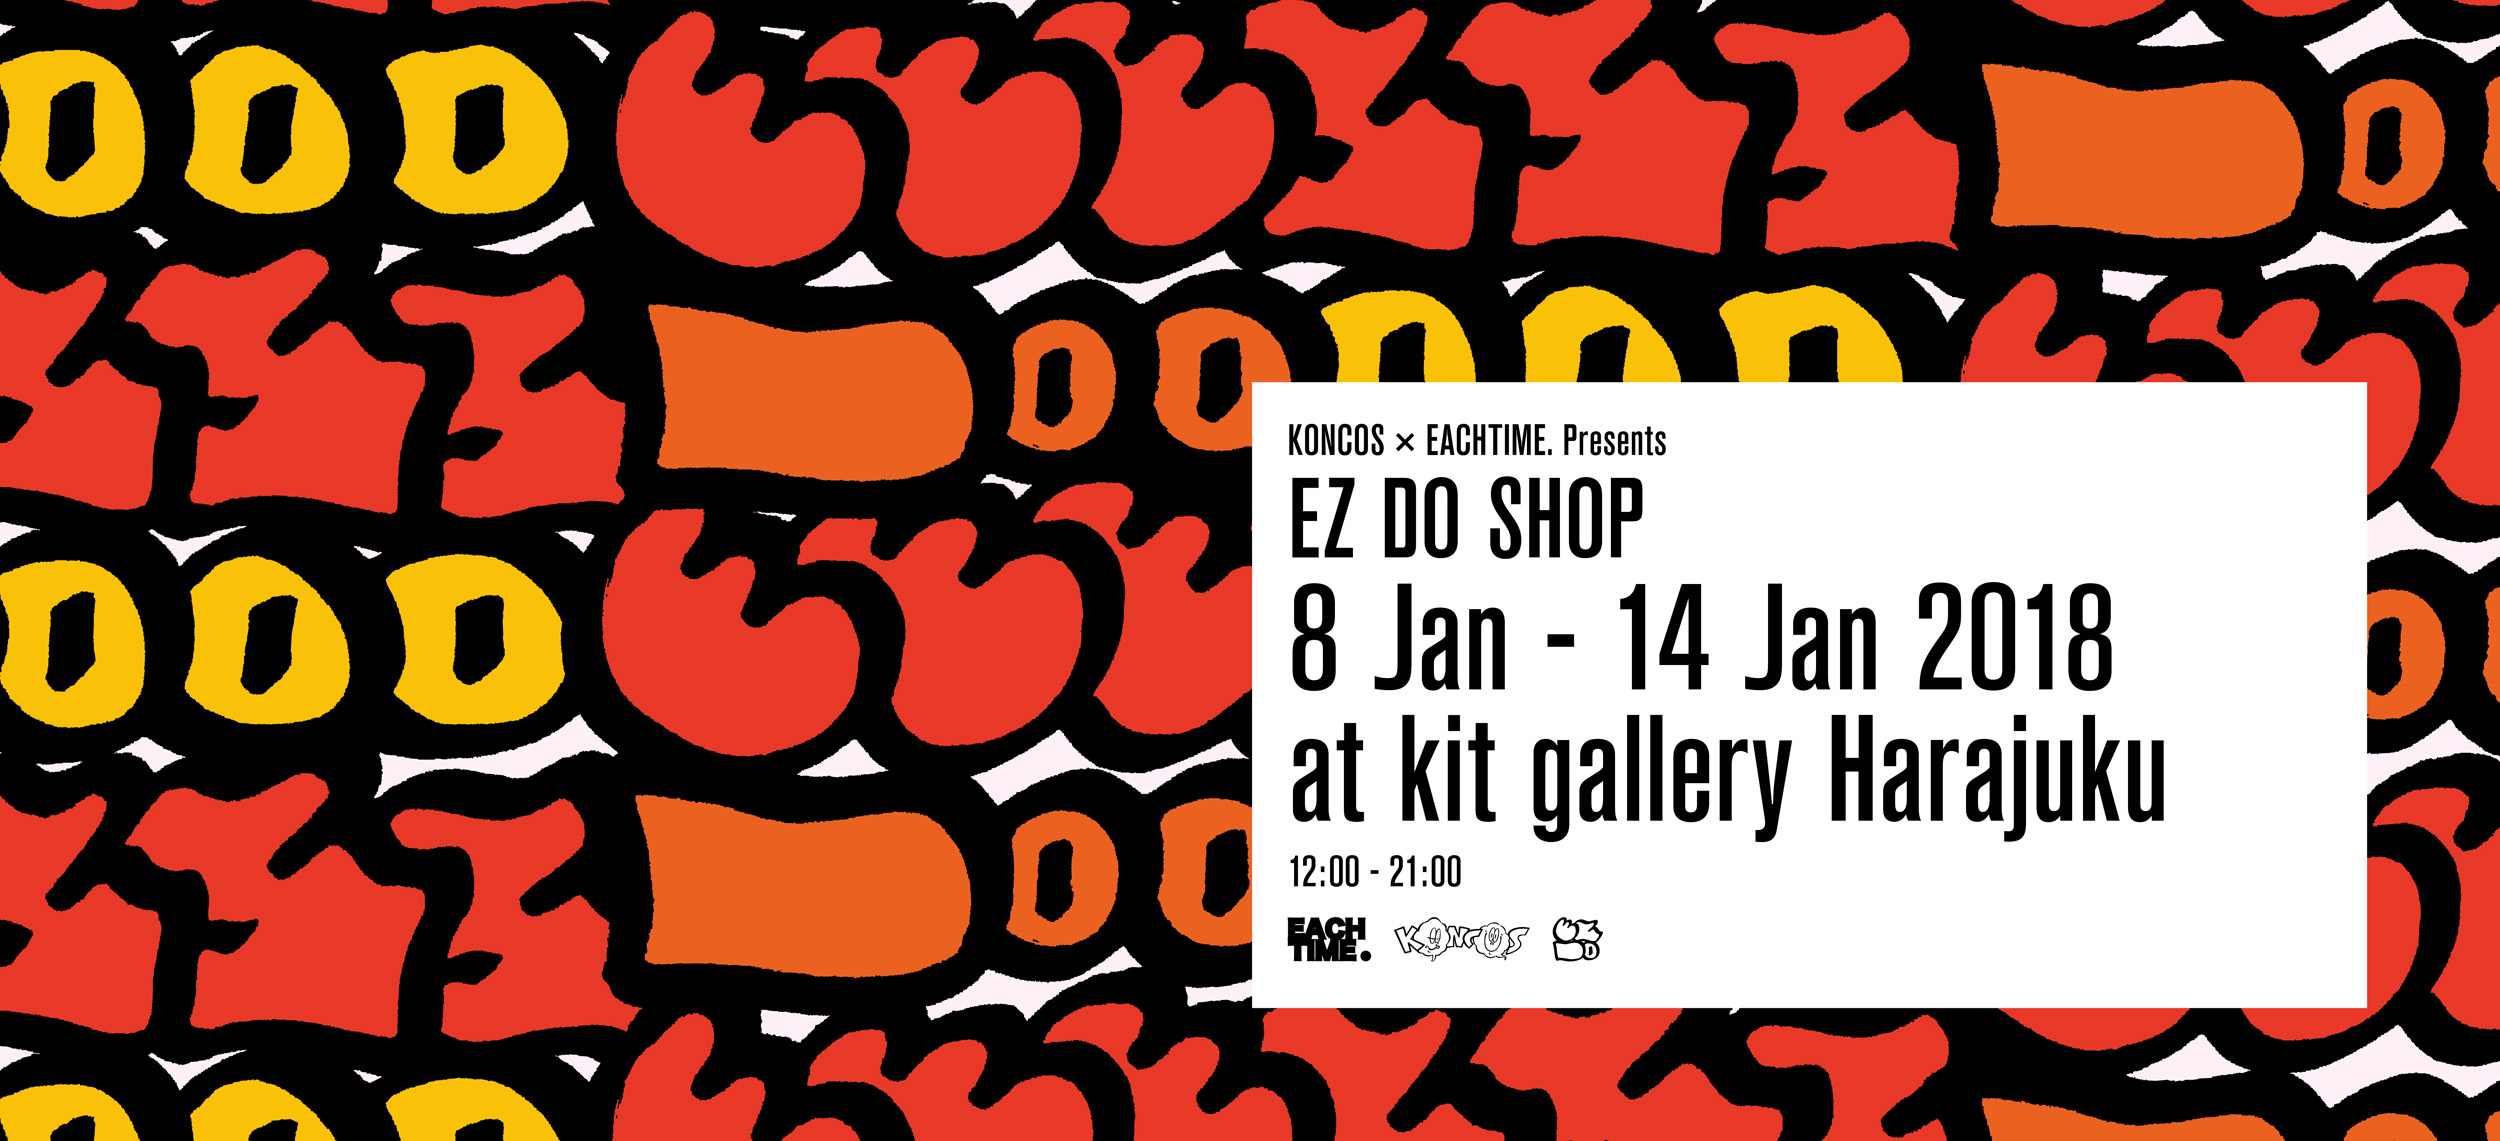 EZ DO SHOP 8 Jan - 14 Jan 2018 at kit gallery Harajuku